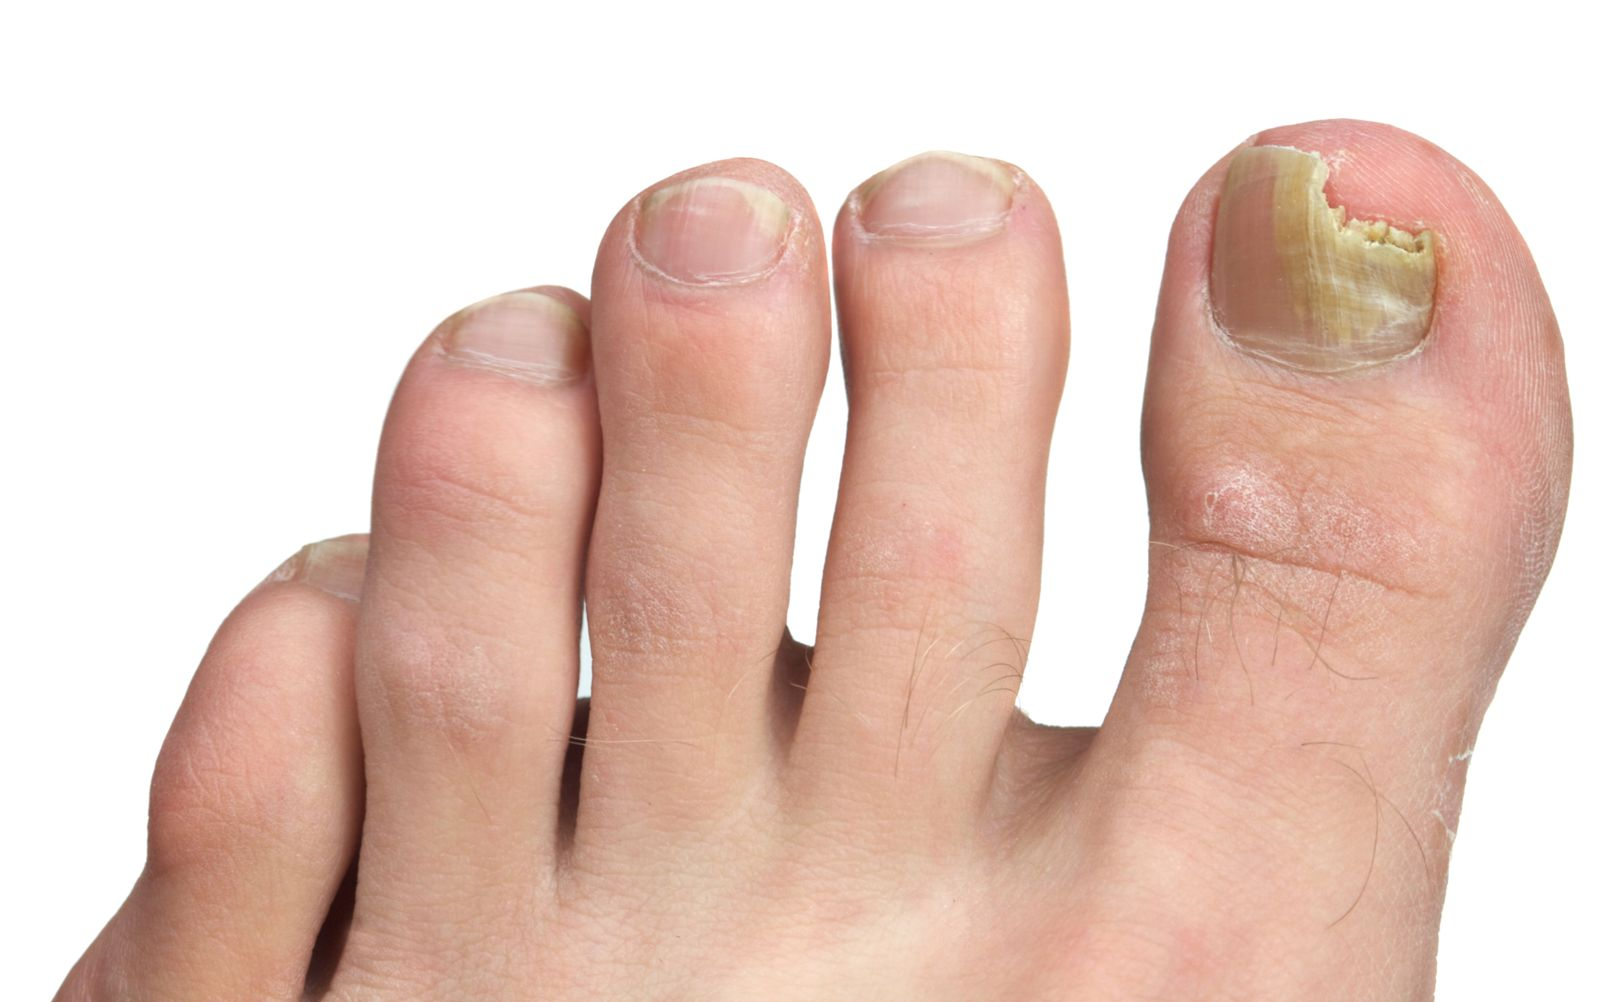 A fungal big toenail on a foot